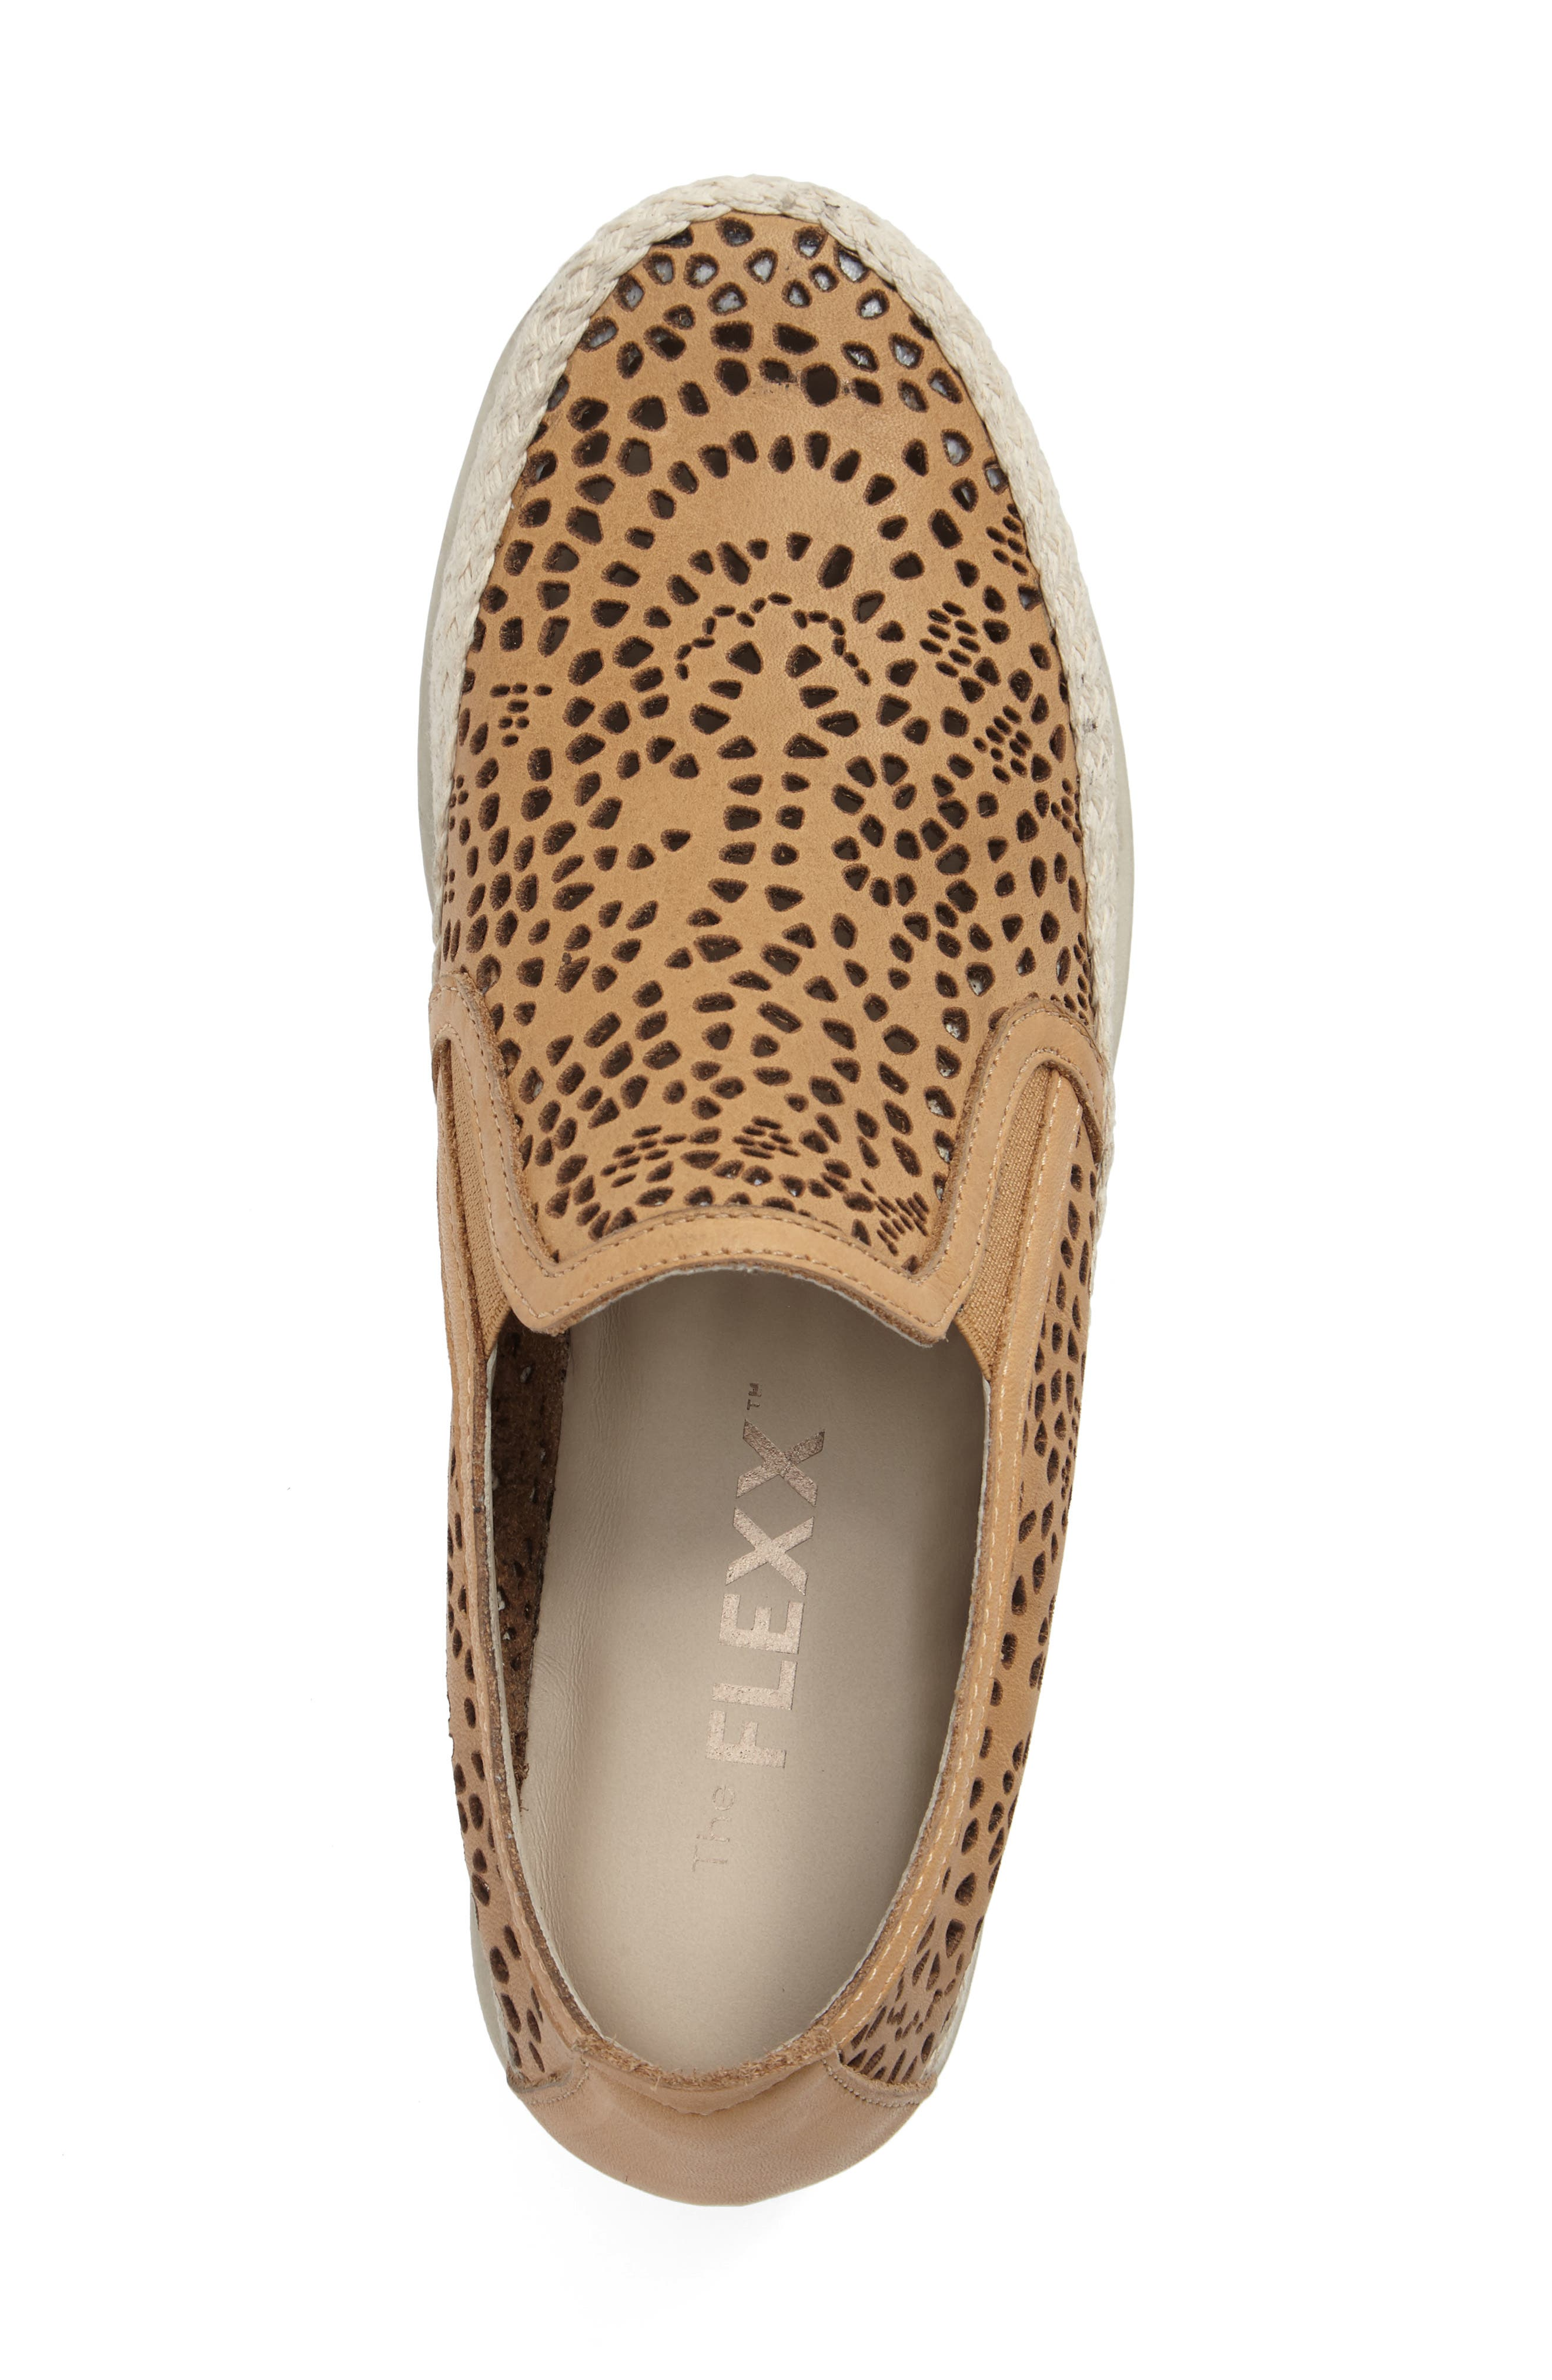 Call Me Perforated Slip-On Sneaker,                             Alternate thumbnail 3, color,                             Camel Leather